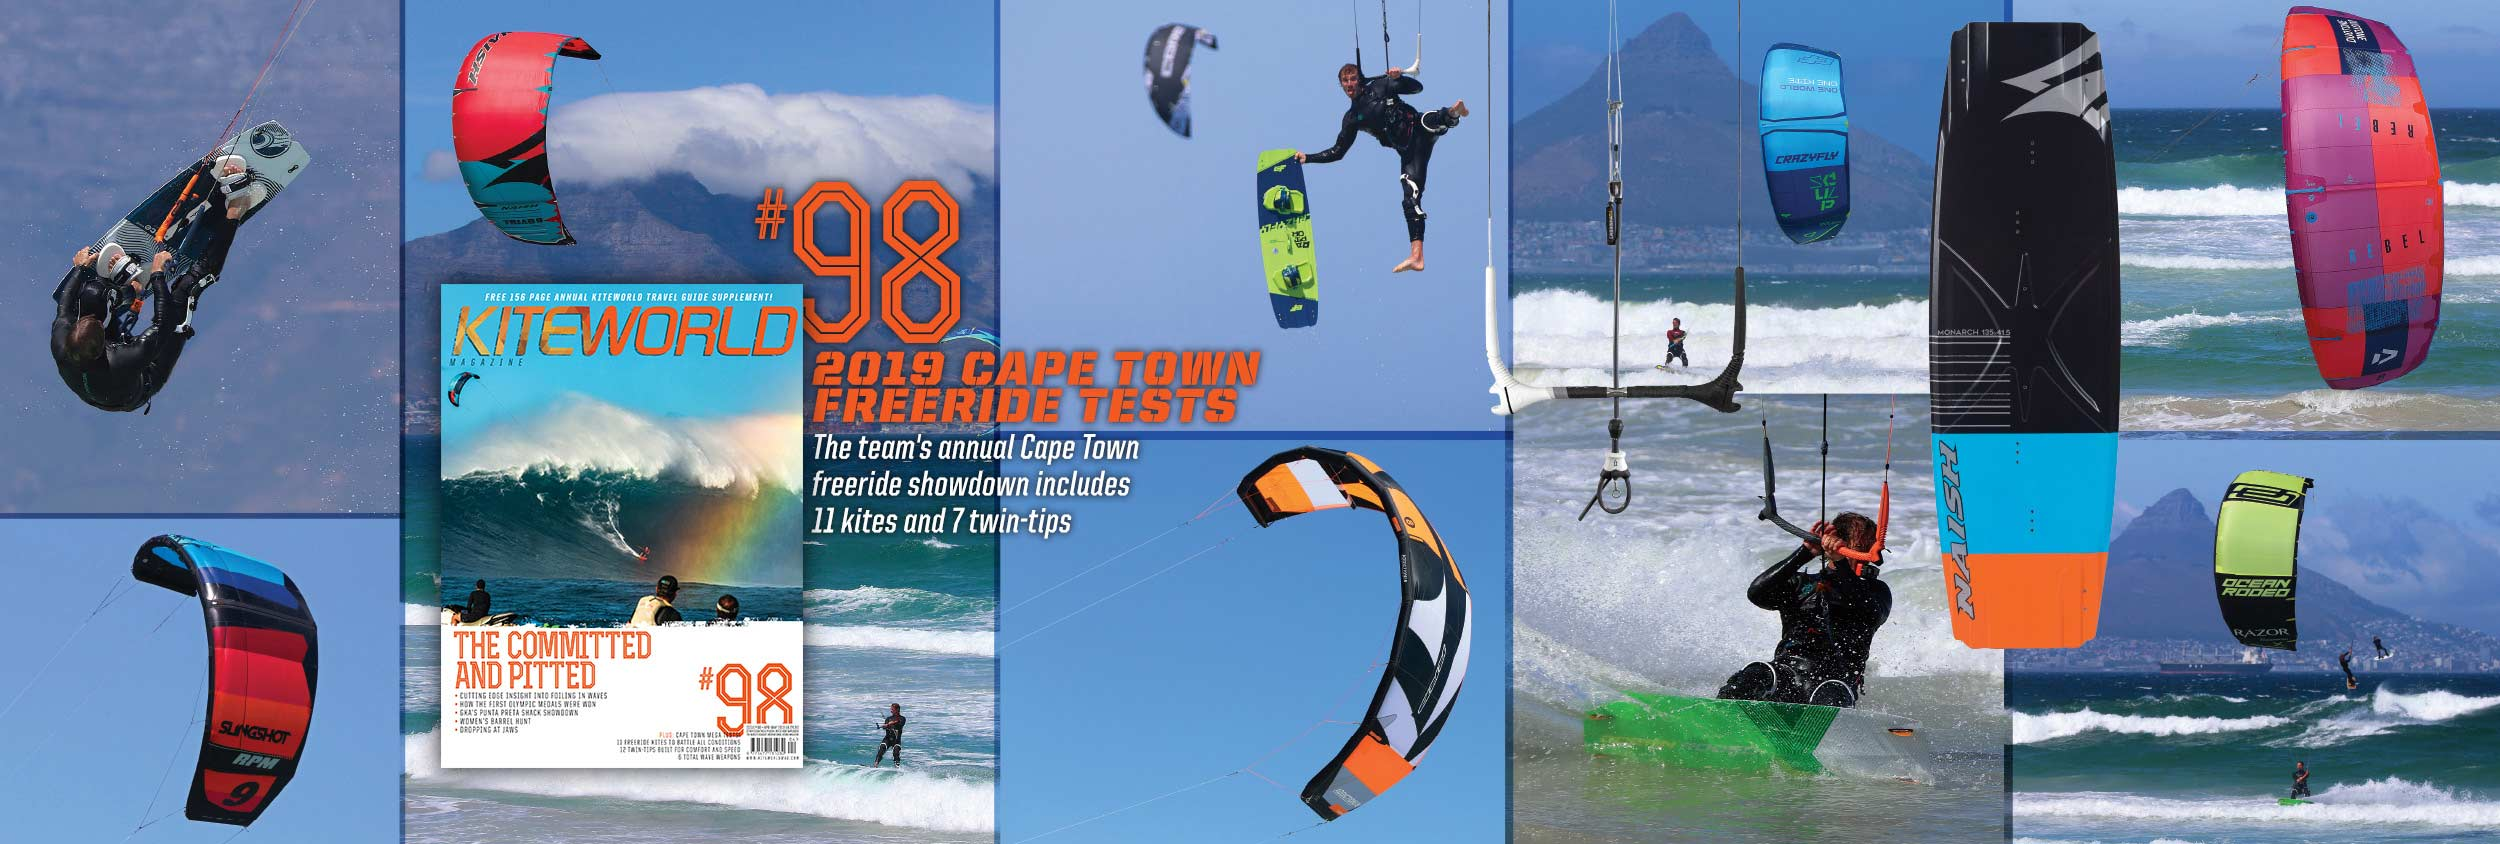 KW#98 2019 freeride kite and twin-tip tests